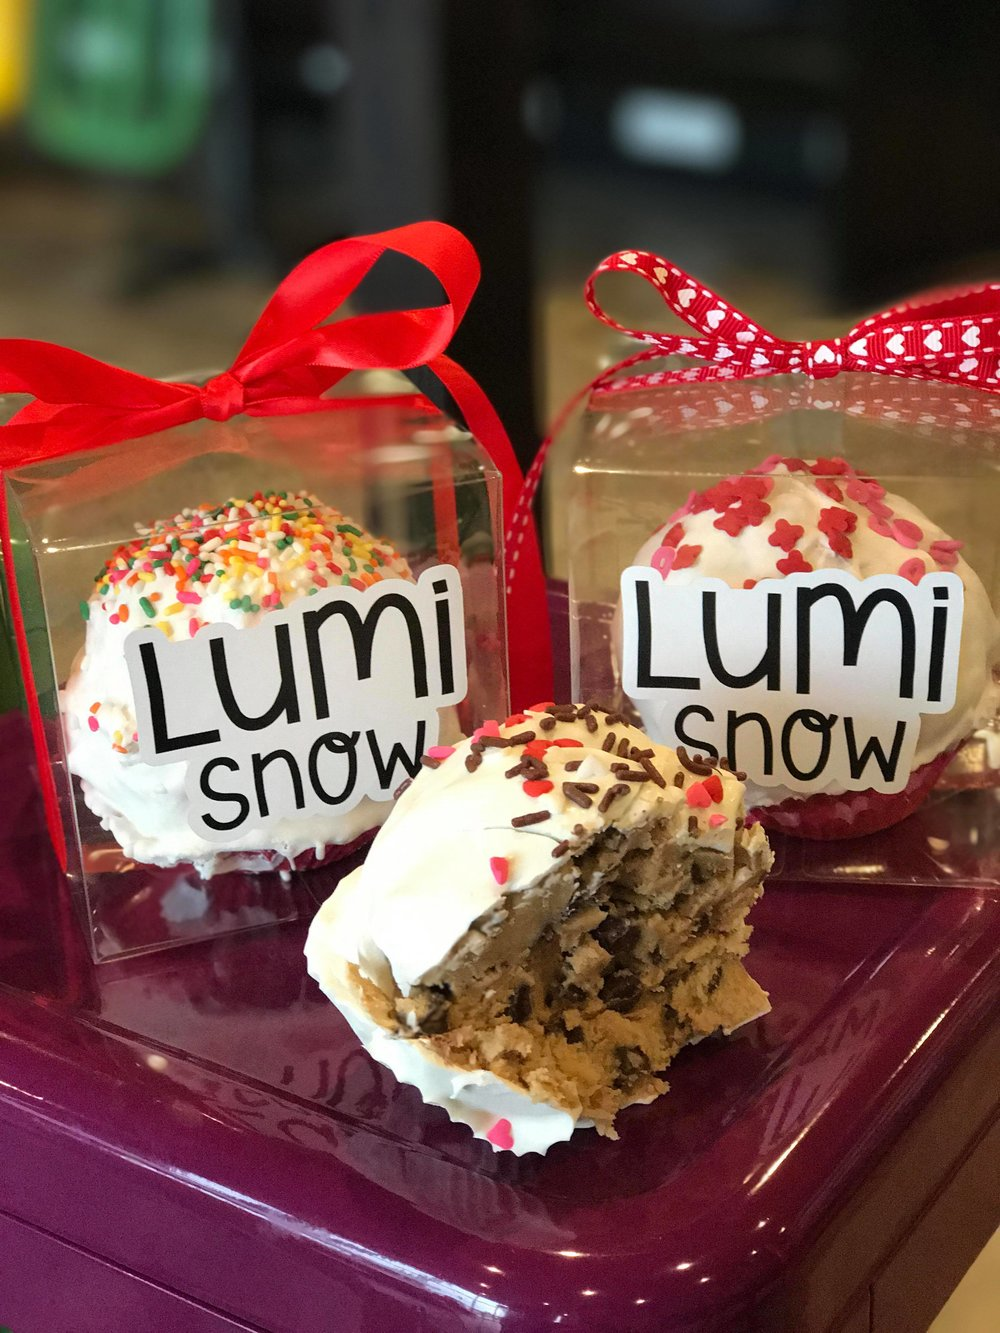 DOUGH BOMBS - Reserve yours for pick up now at either our North Richland Hills store or the Basswood/Beach store!Pickup will be available starting 2/13.$8 each or 5/$35 (online special only)Available in Classic Chocolate Chip only